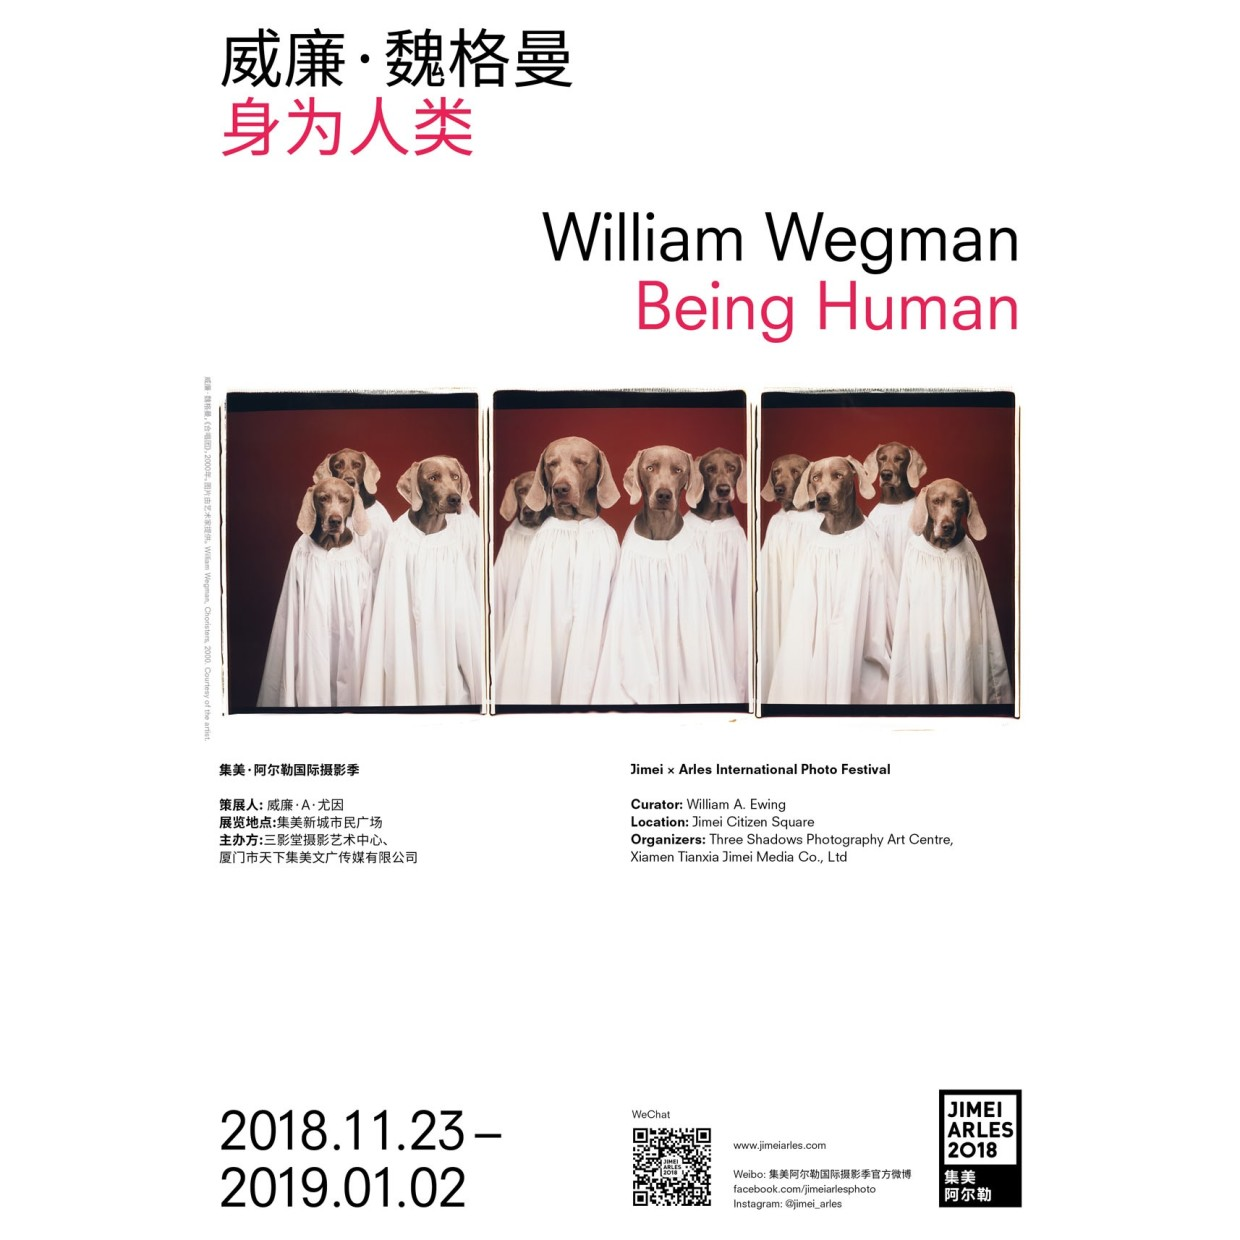 WILLIAM WEGMAN BEING HUMAN CURATED BY WILLIAM A. EWING William Wegman is a renowned, versatile American artist who resists an...